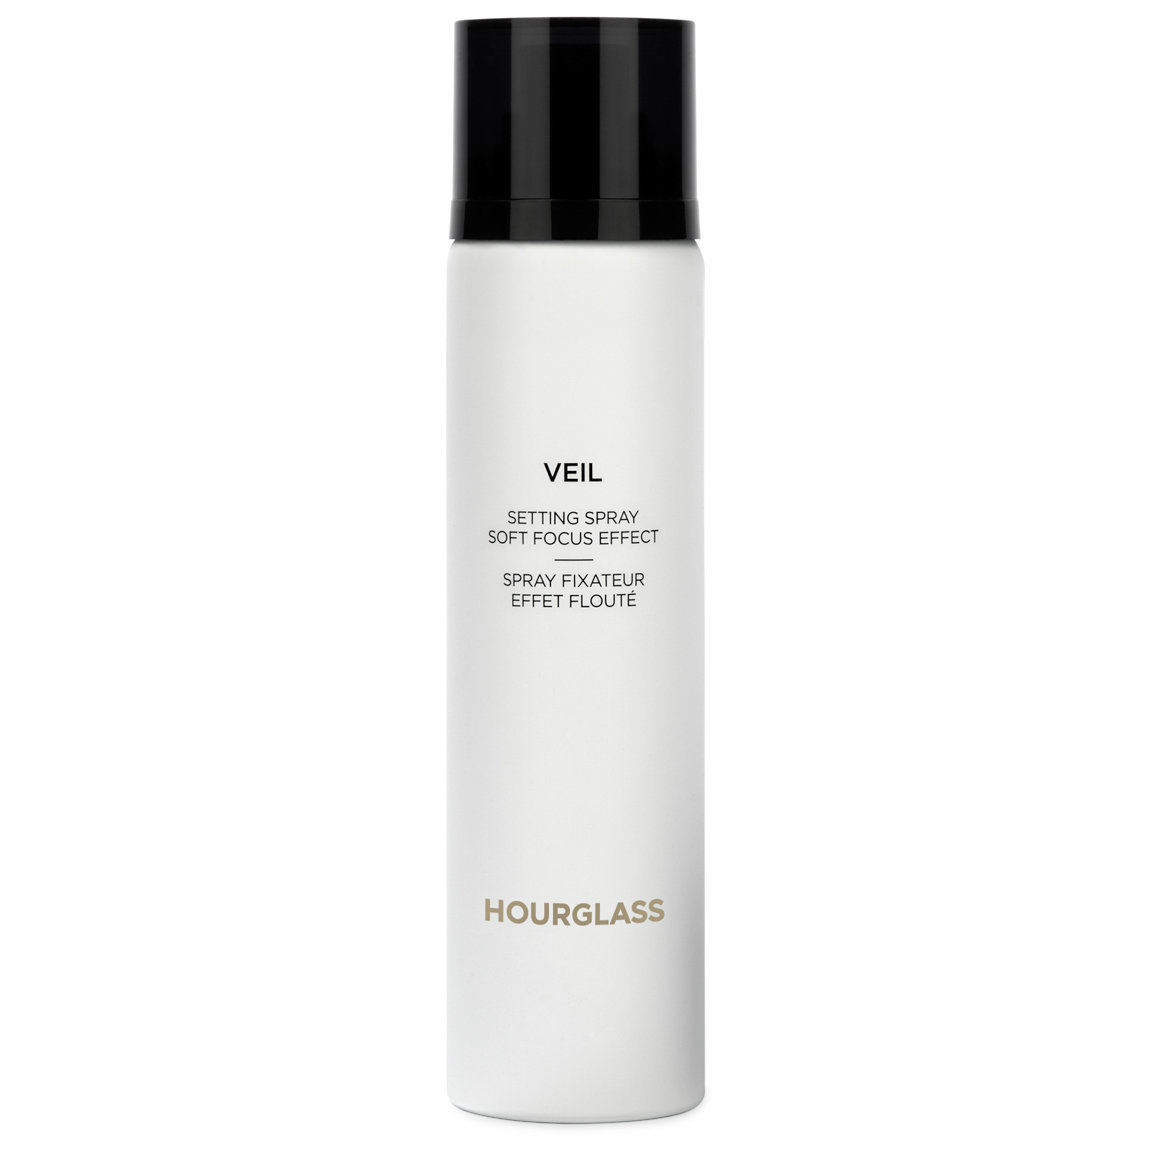 Hourglass Veil Soft Focus Setting Spray alternative view 1 - product swatch.